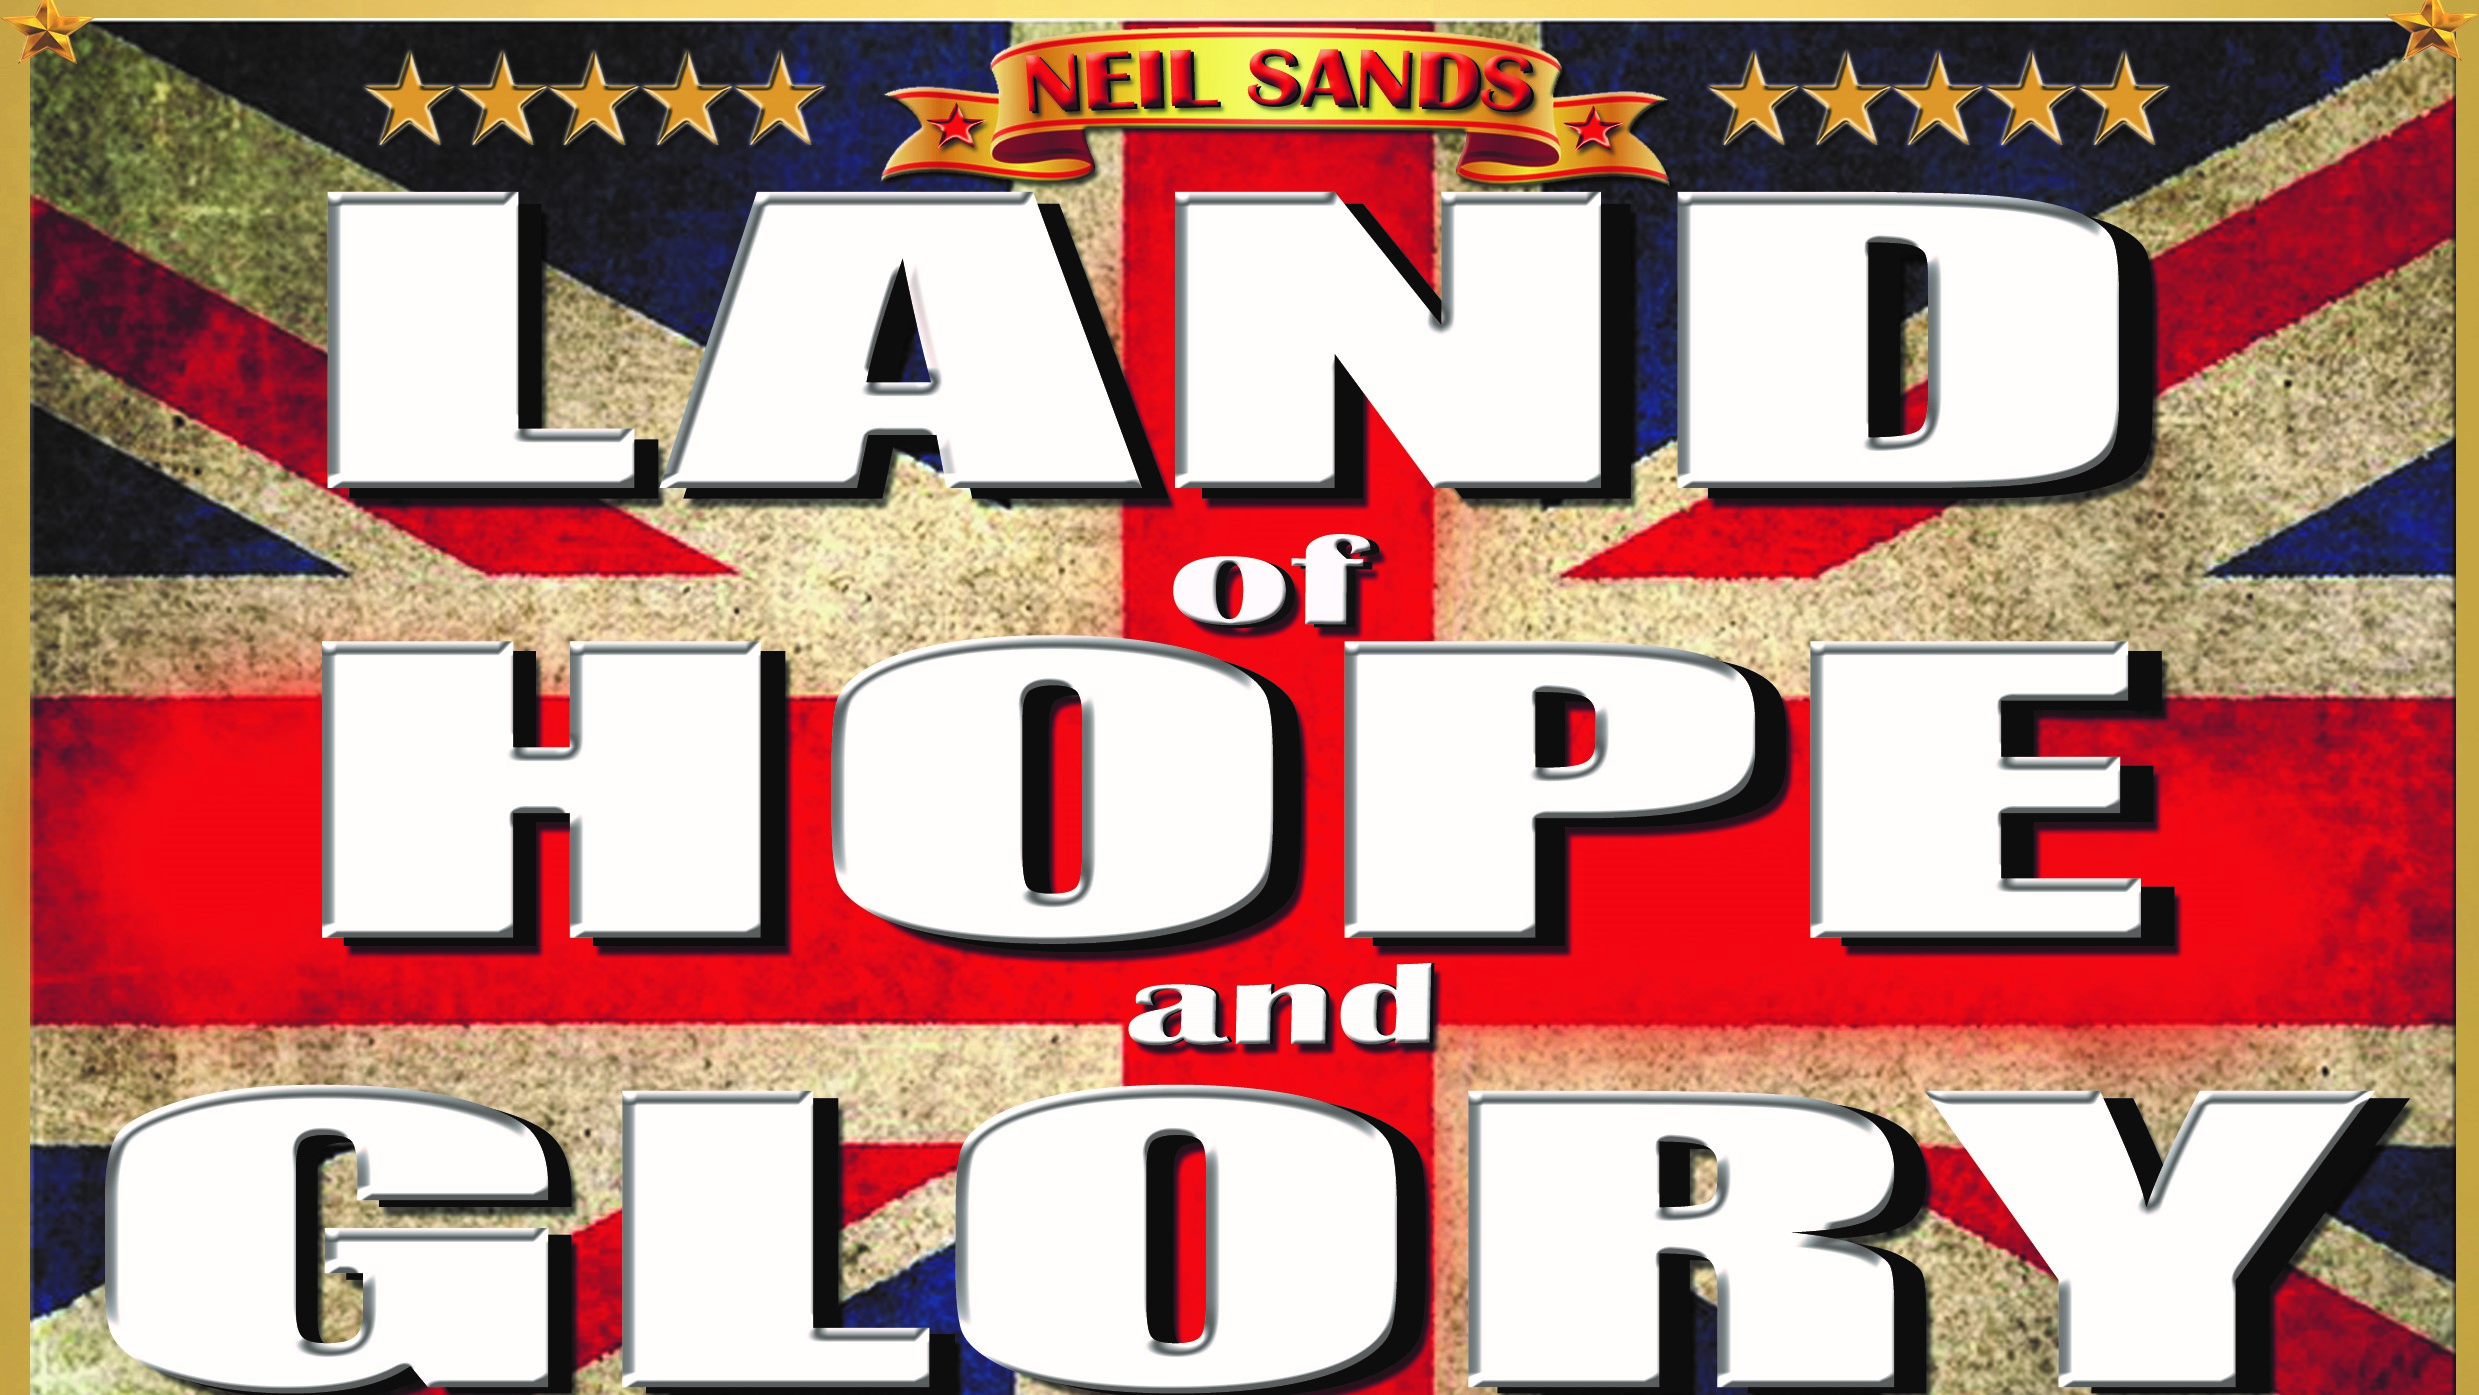 Land of hope and glory text